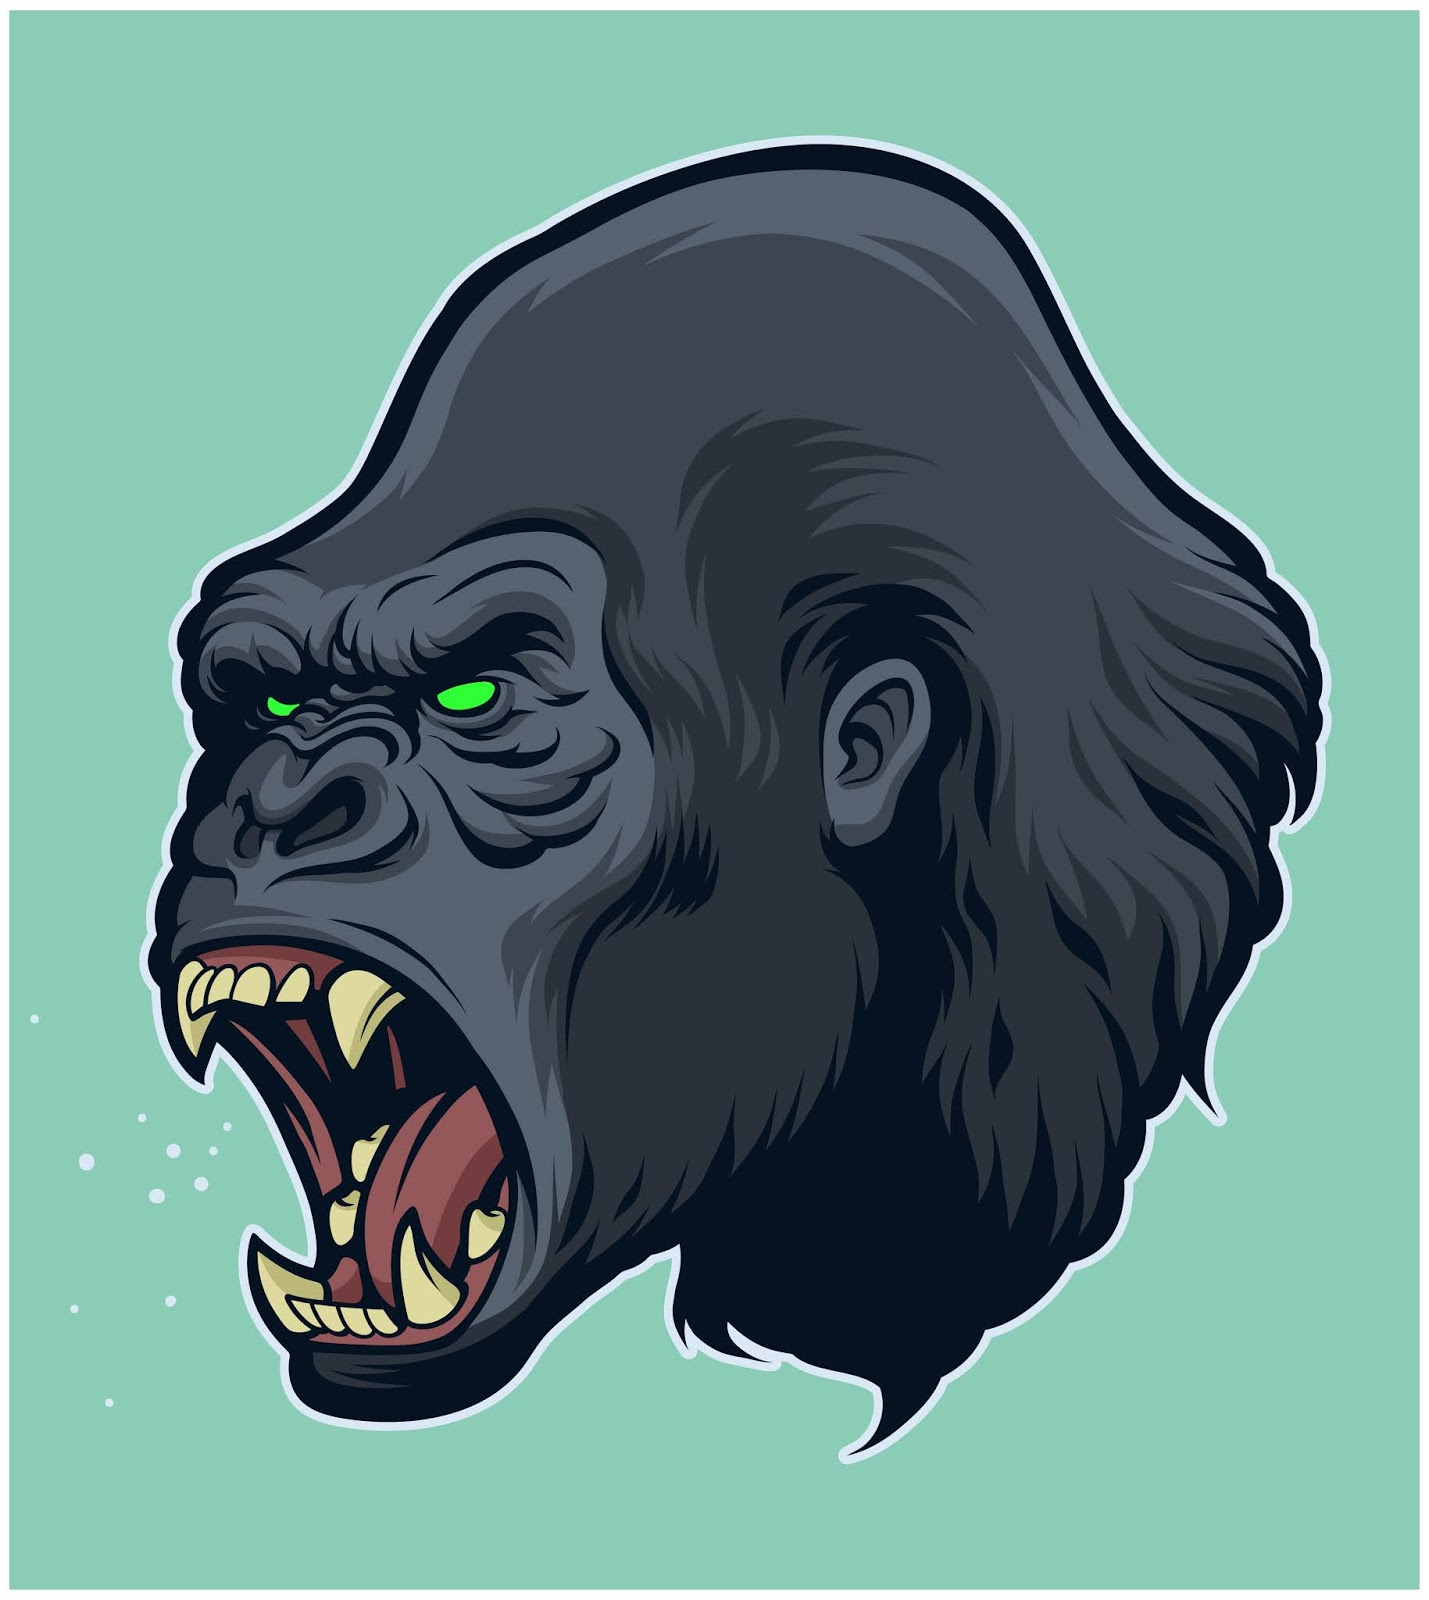 Angry Gorilla Head.jpg Free Download Vector CDR, AI, EPS and PNG Formats